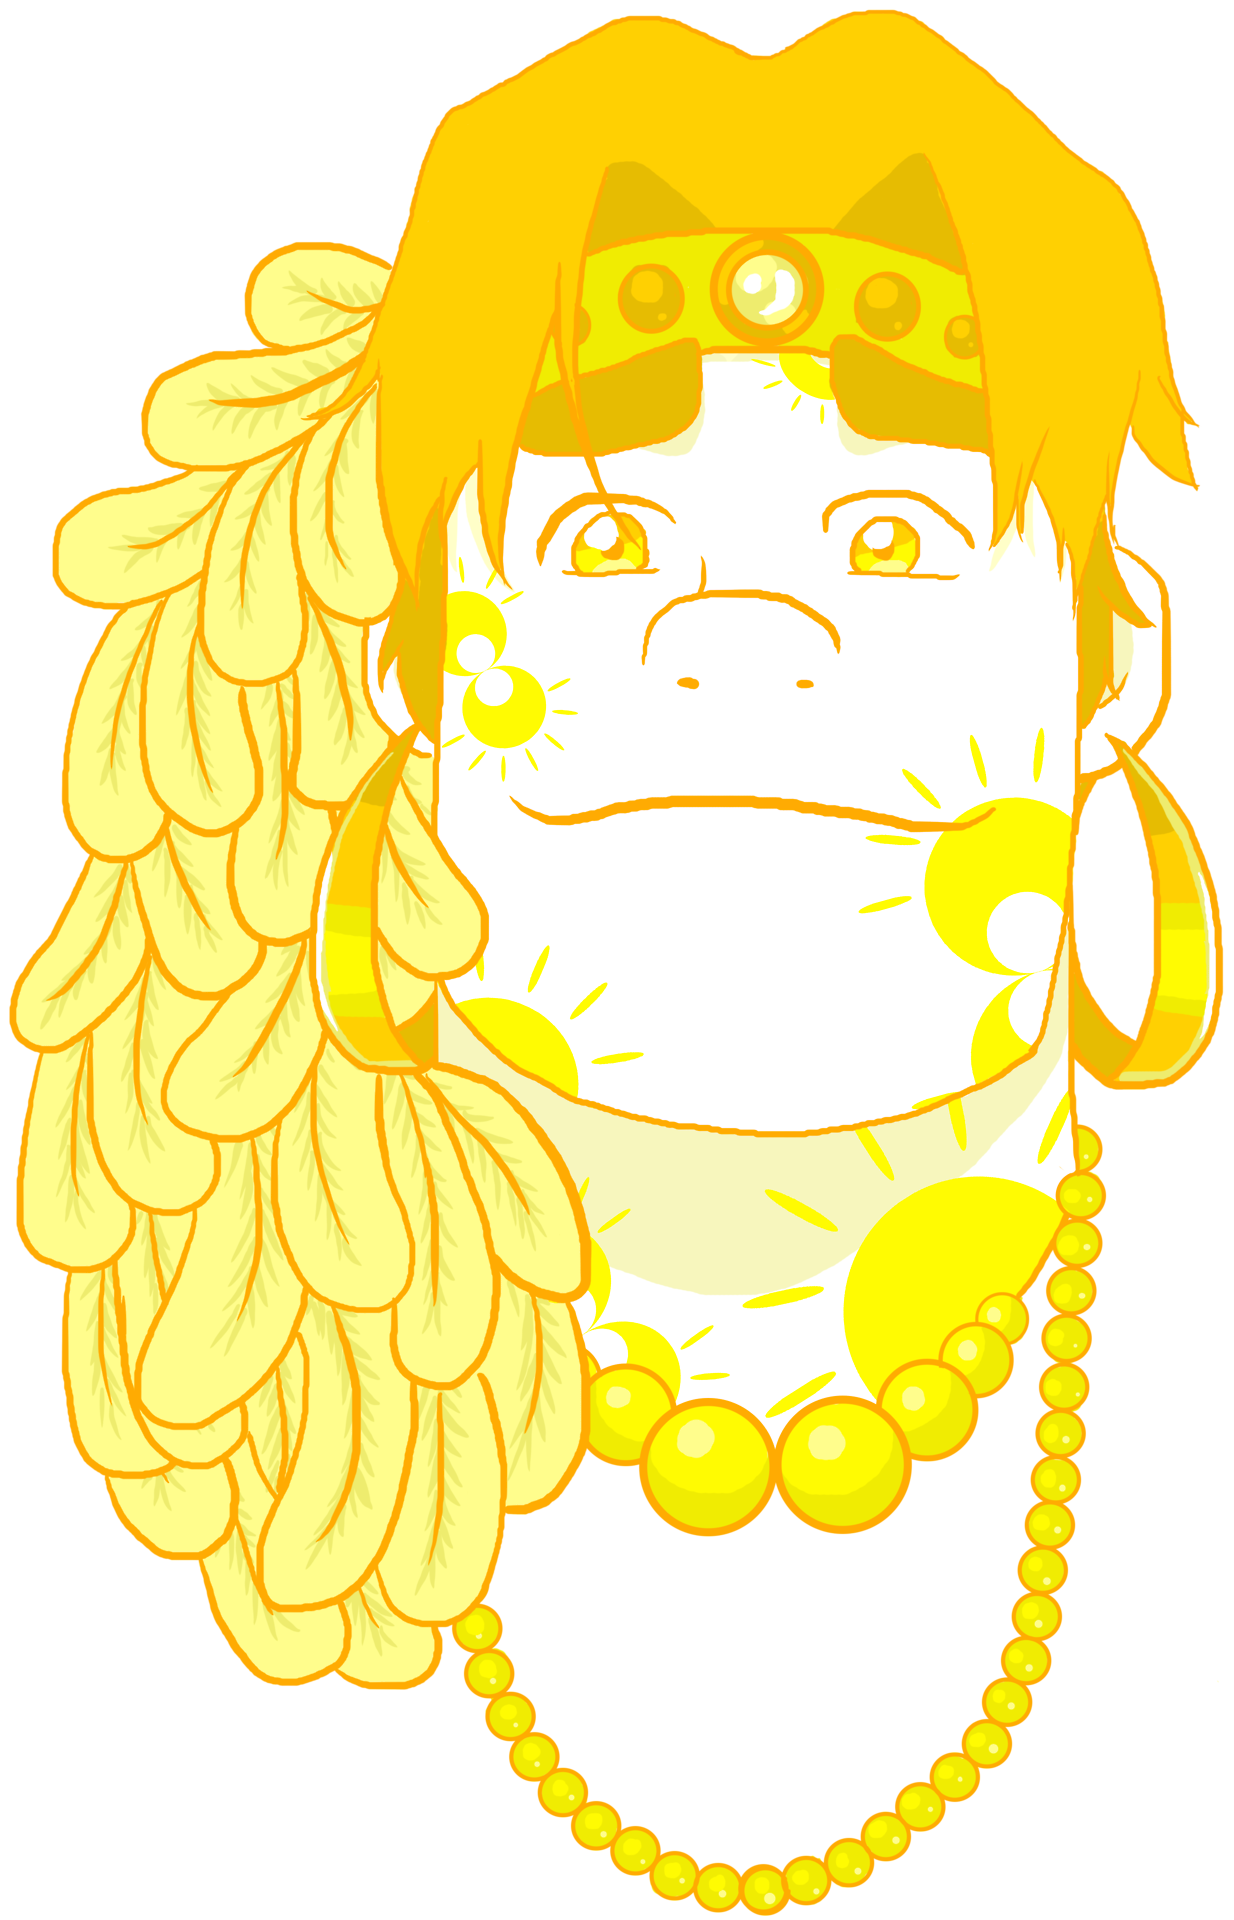 Apple strudel clipart svg black and white stock Apple Strudel | Redrew these guys on my tablet =w= Keith and... svg black and white stock